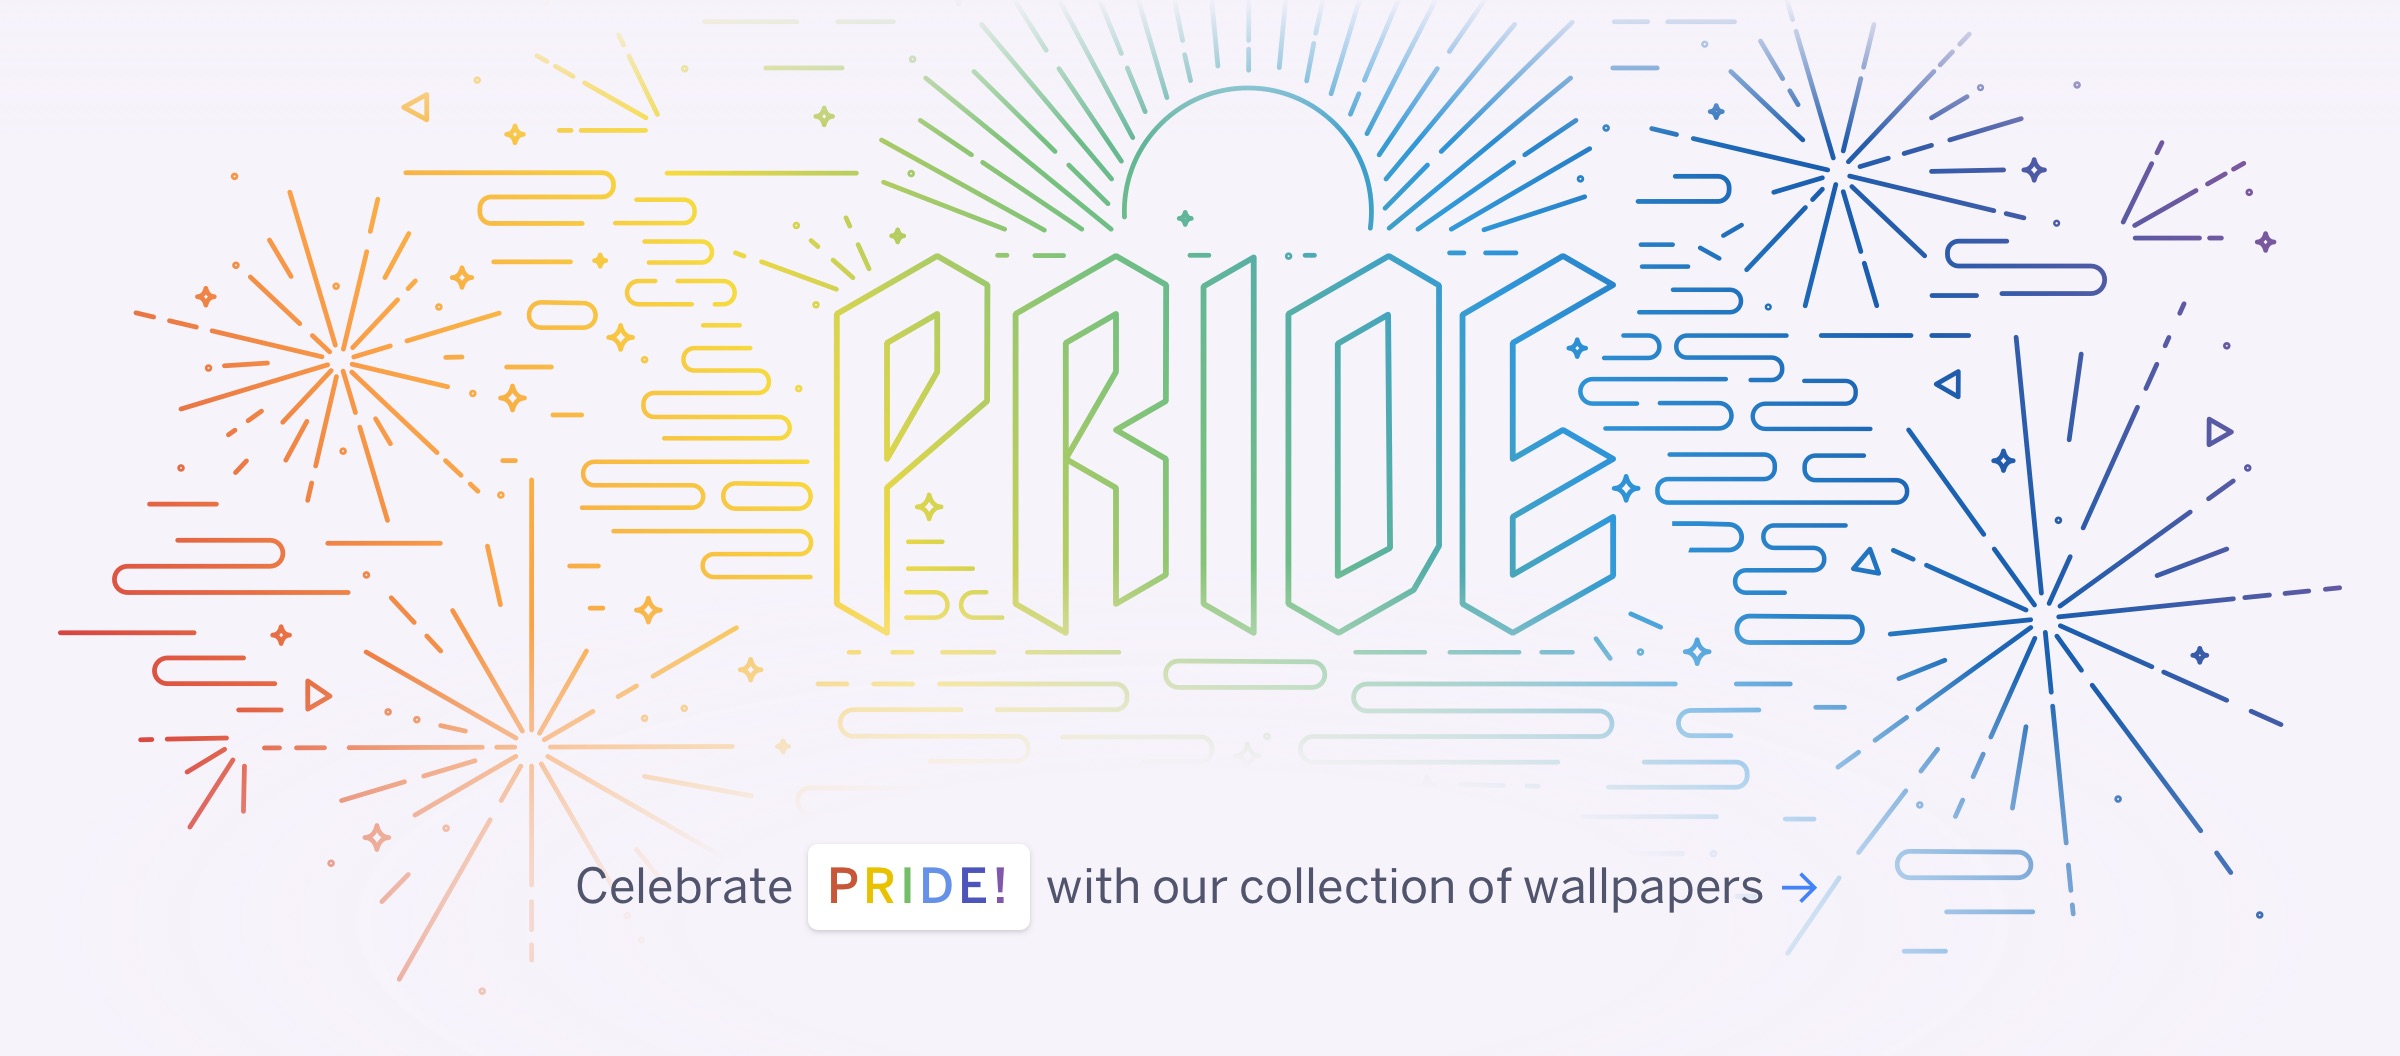 Fireworks and rainbow colors with the message, 'Celebrate pride with our collection of wallpapers'